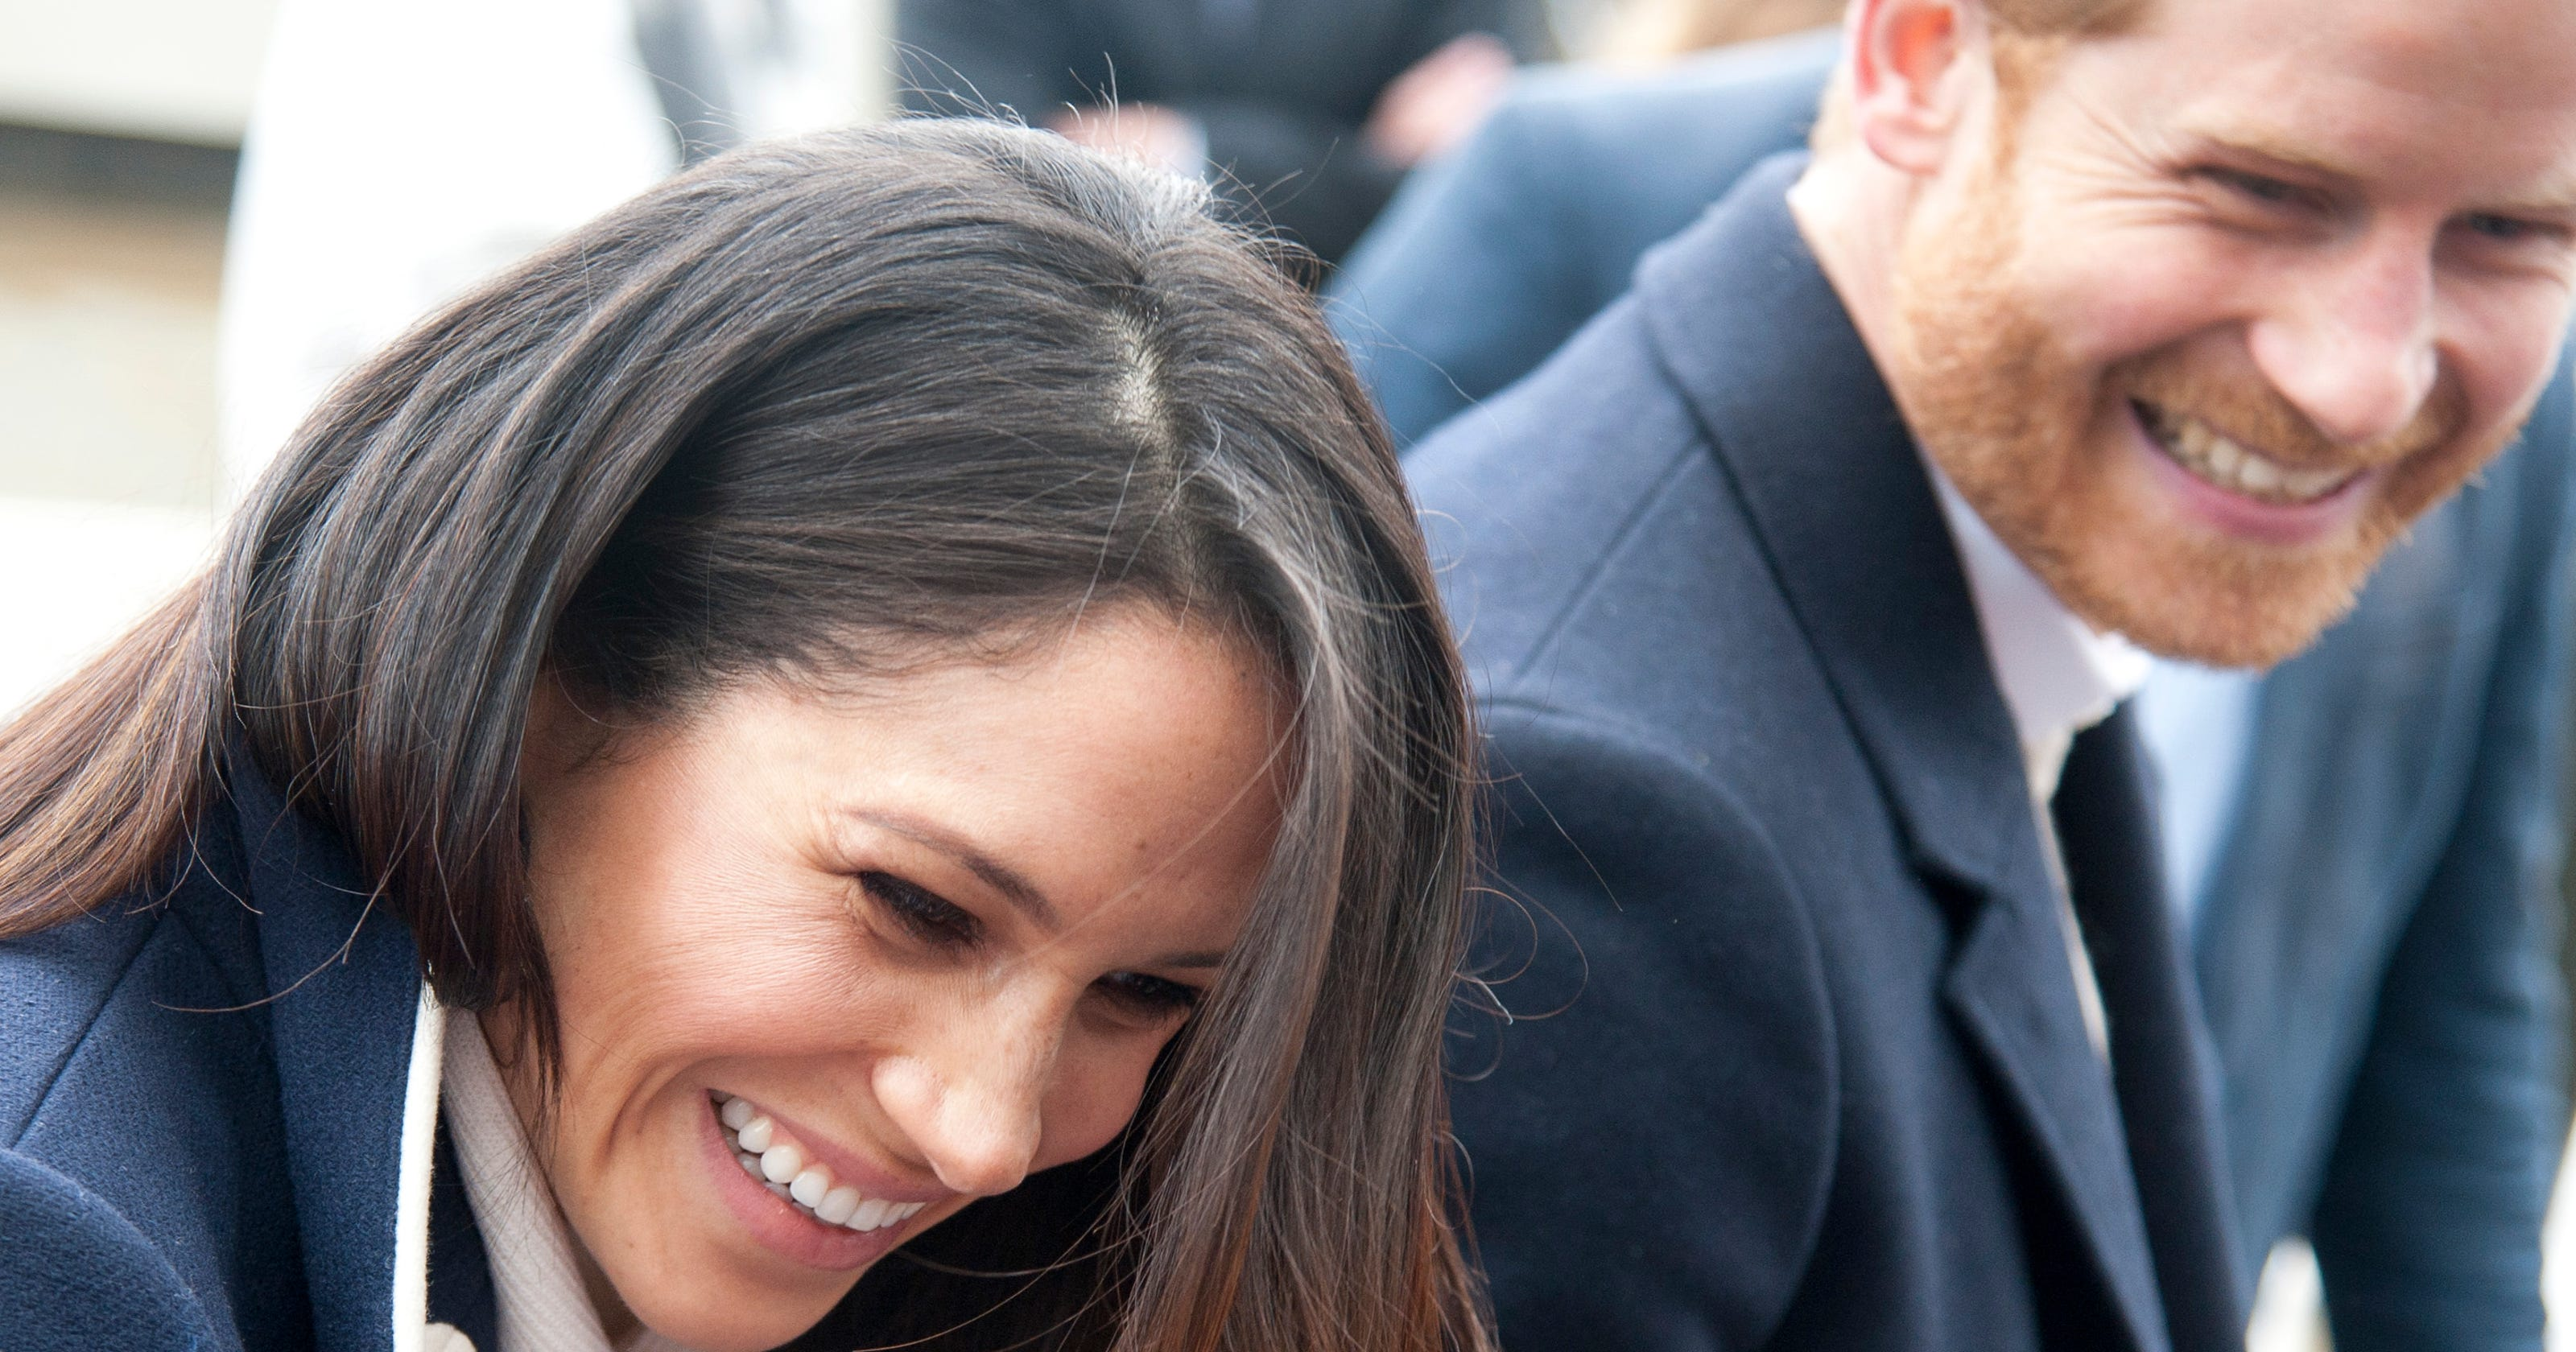 Royal wedding: Will he or won't he? Meghan Markle's dad's status